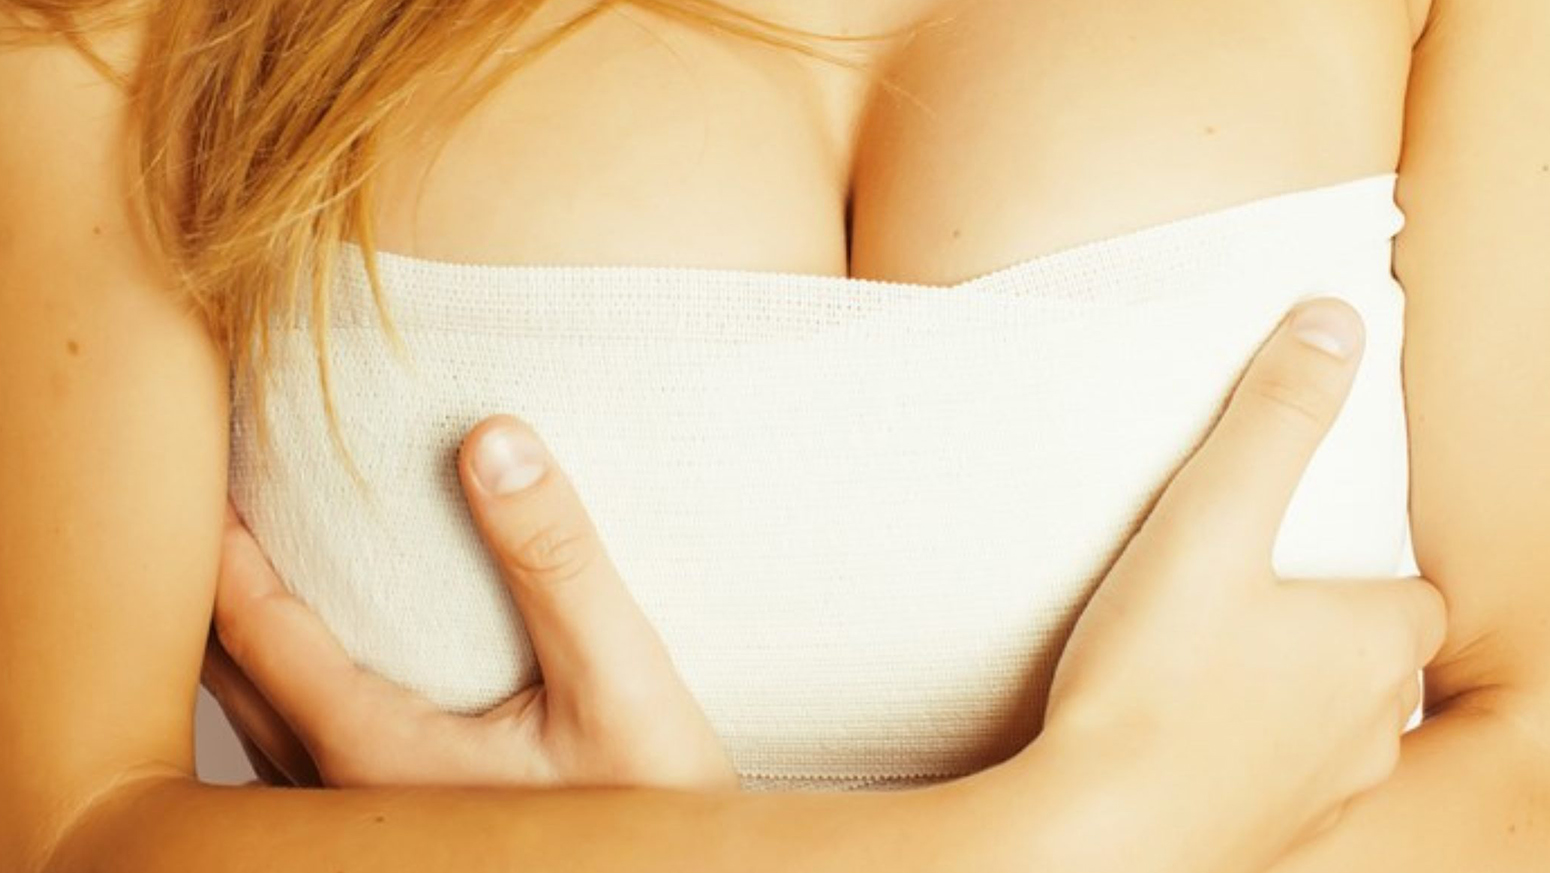 Things to Consider Before Getting Breast Augmentation